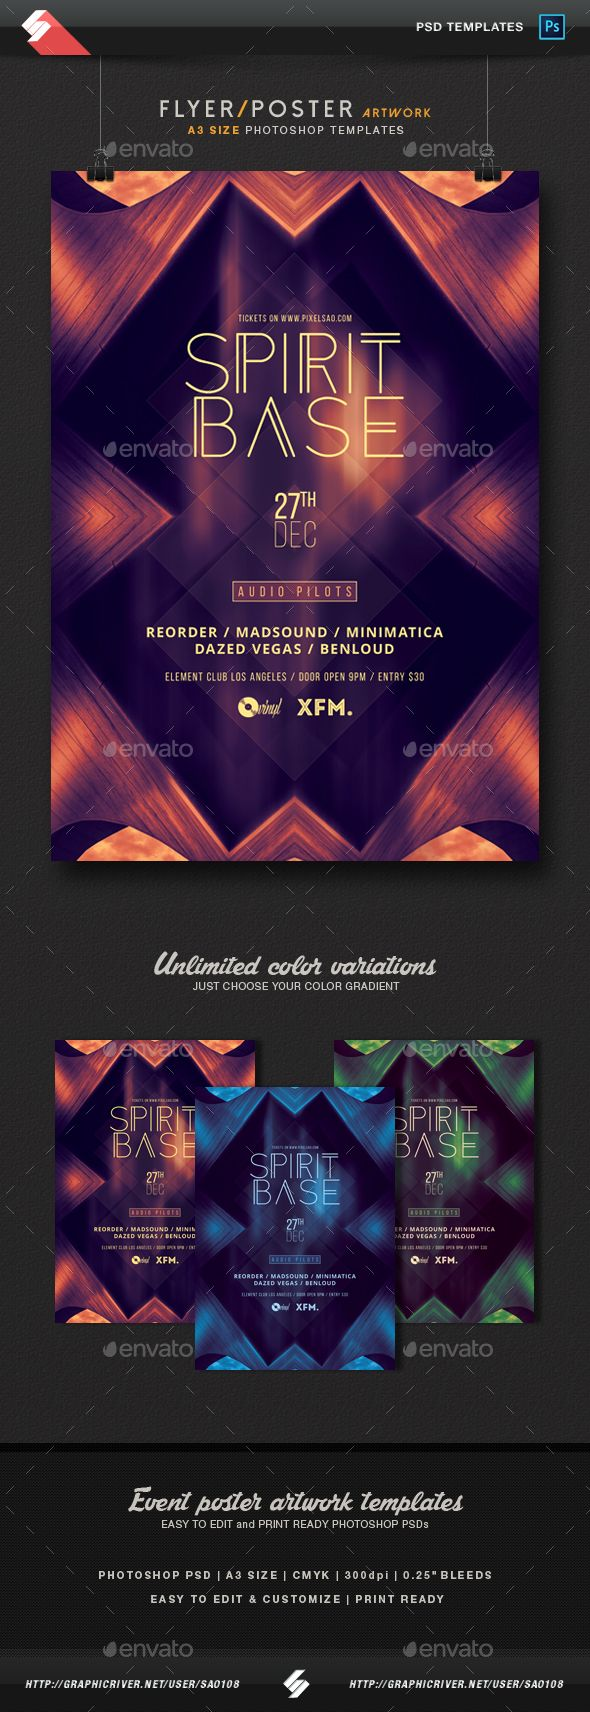 Spirit Base - Trance Party Flyer / Poster Template A3 PSD